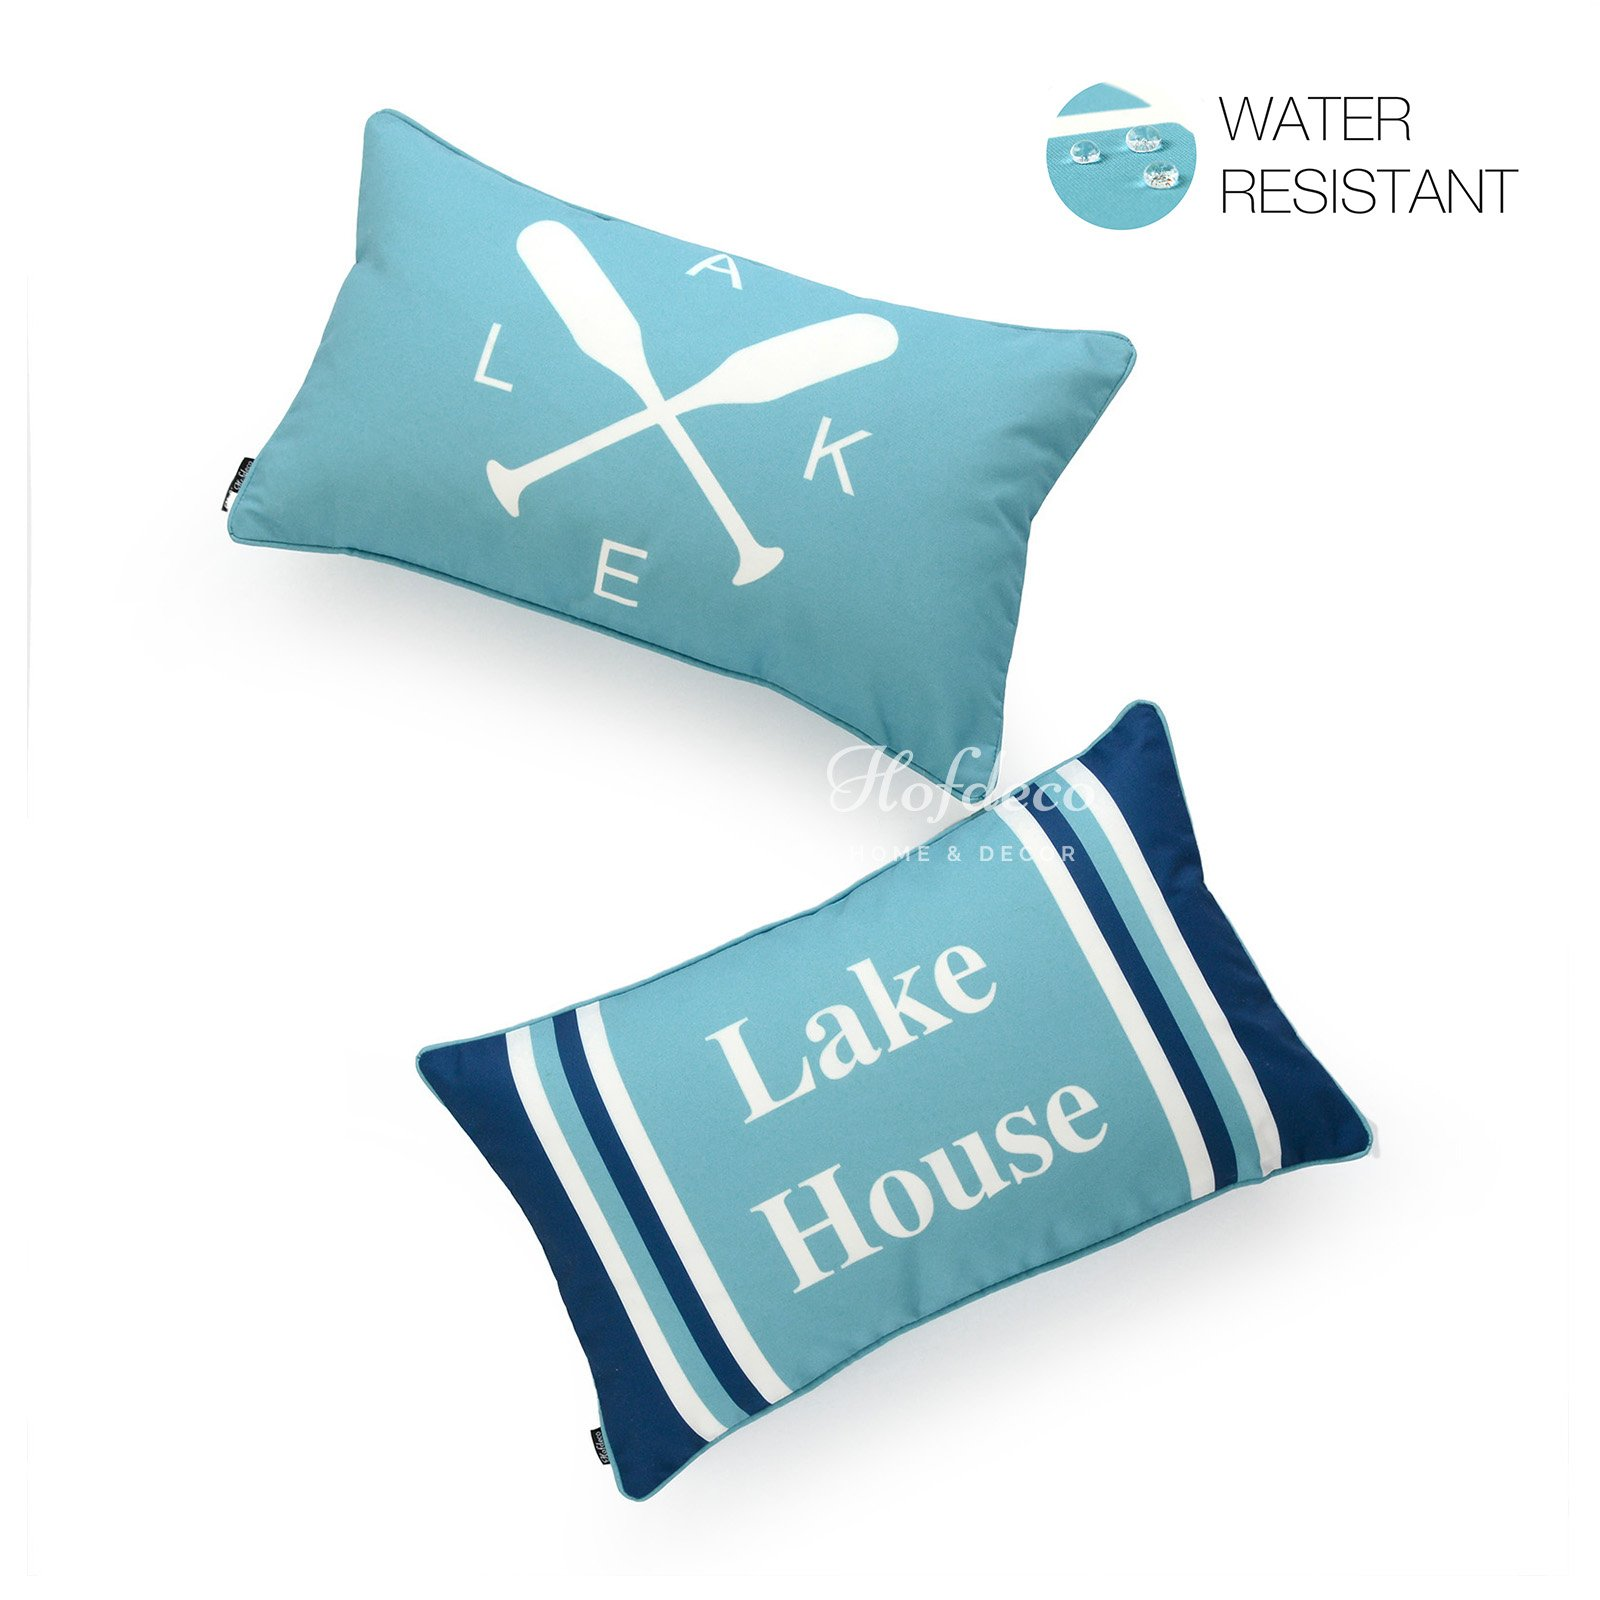 Hofdeco Decorative Lumbar Pillow Cover INDOOR OUTDOOR WATER RESISTANT Canvas Summer Lake Aqua Turquoise Navy Blue Lake House Word 12''x20'' Set of 2